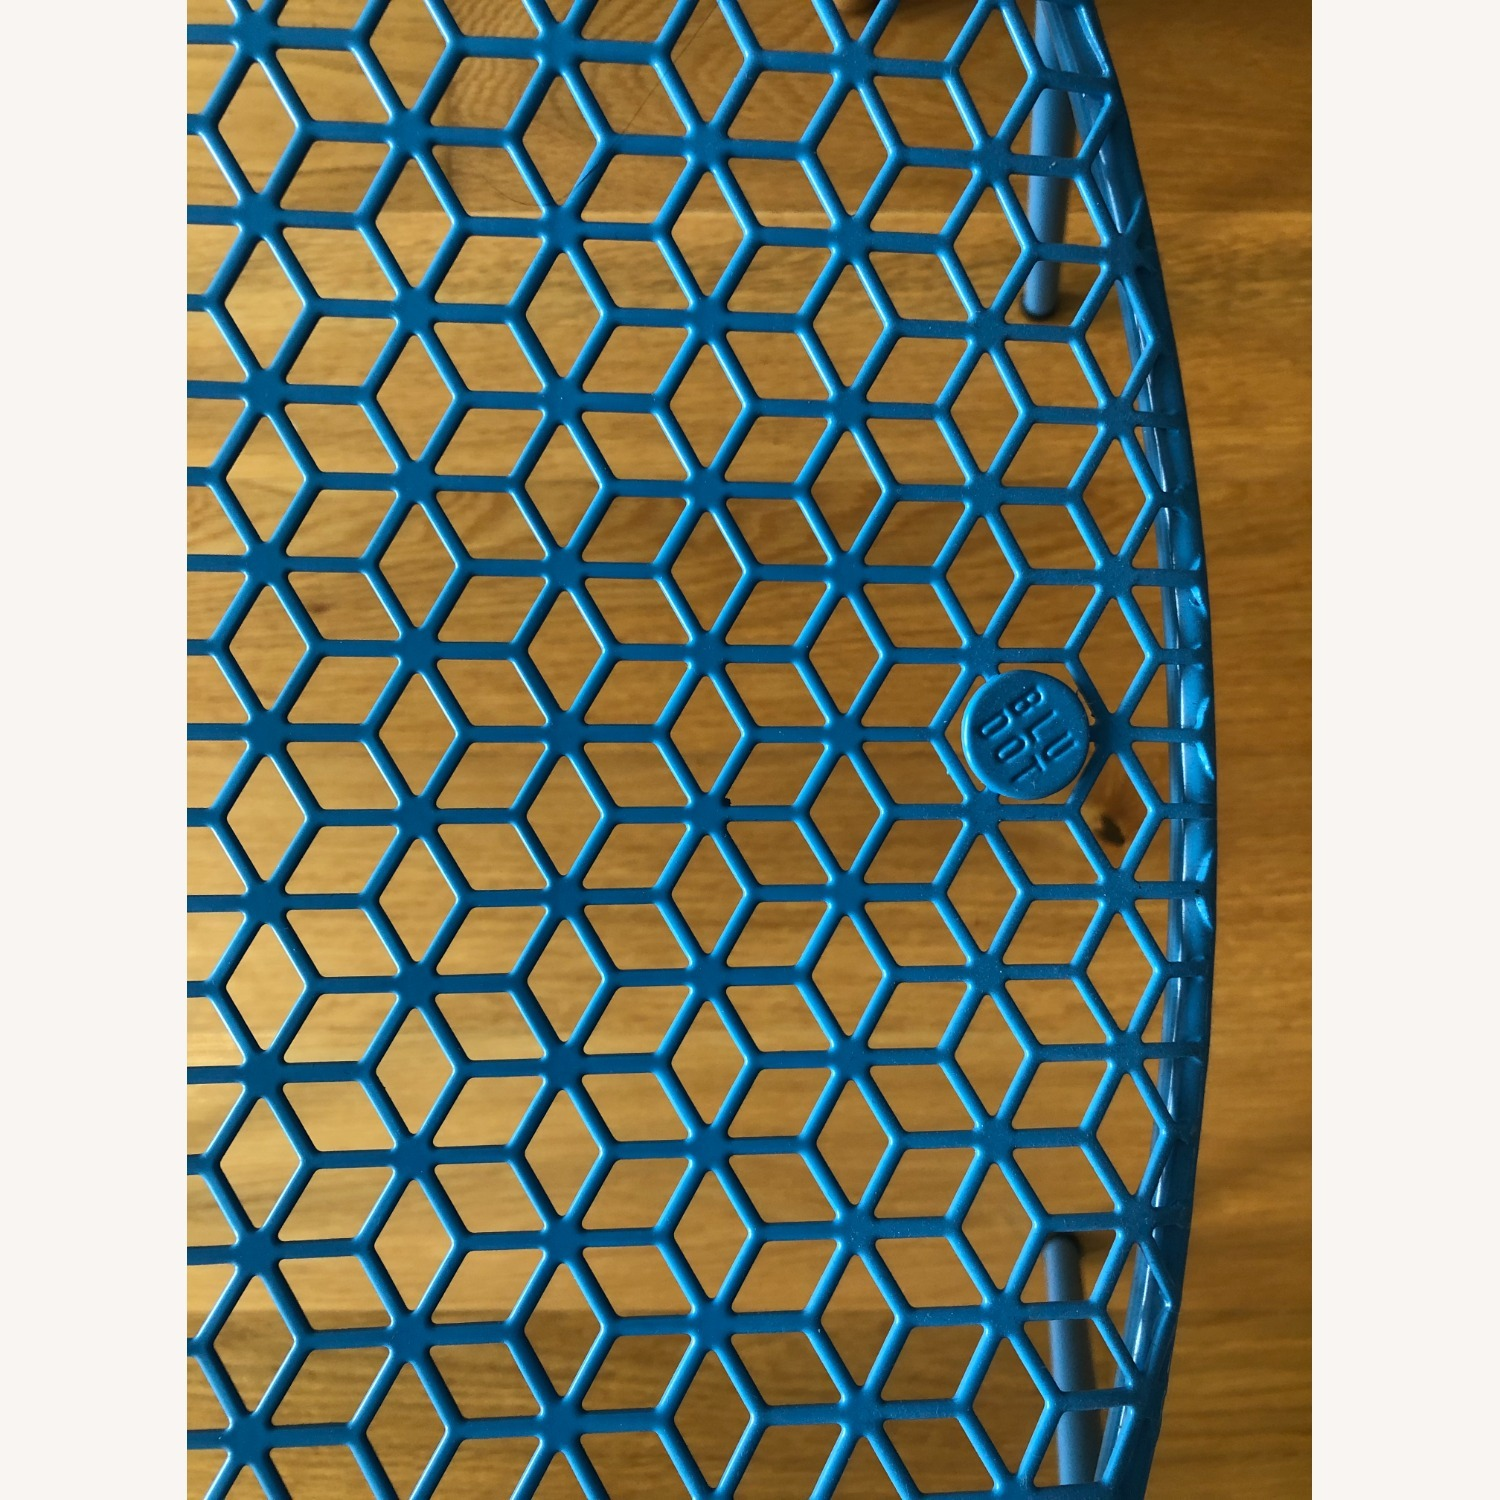 Blu Dot Hot Mesh Chairs in Simple Blue (Set of 4) - image-5